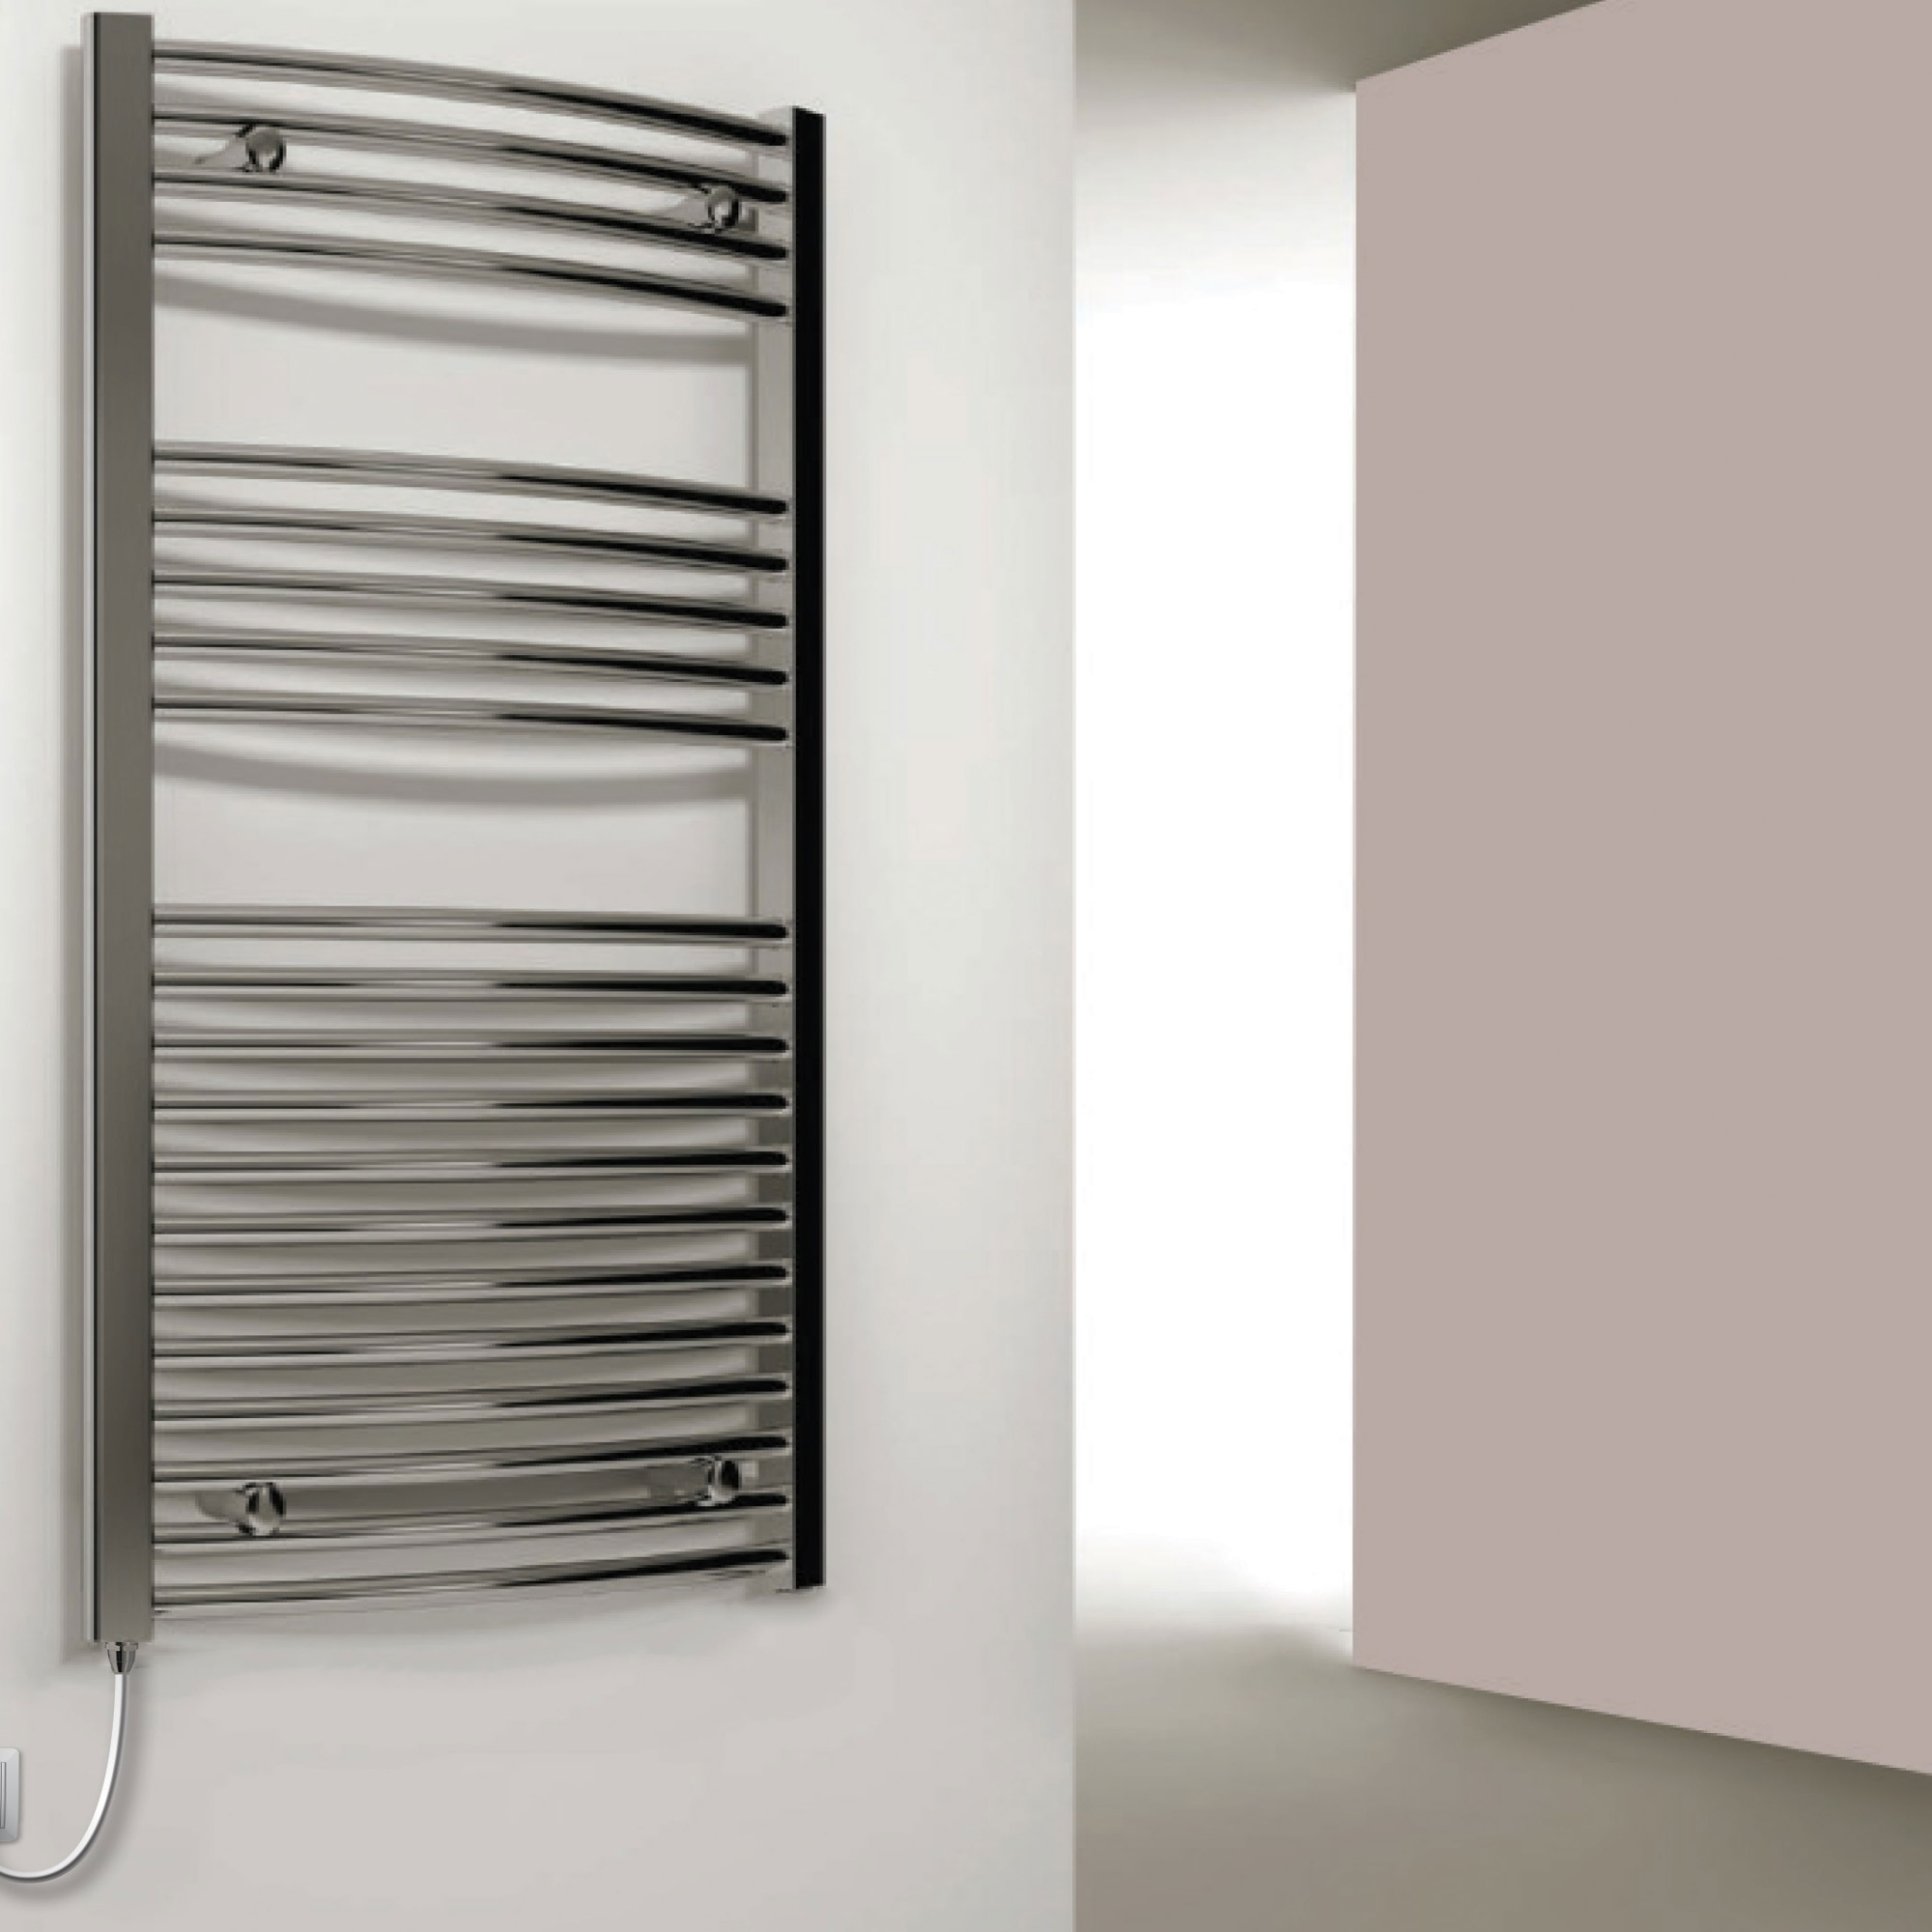 Reina Capo Curved Thermostatic Electric Heated Towel Rail 800mm H x 600mm W Chrome-0